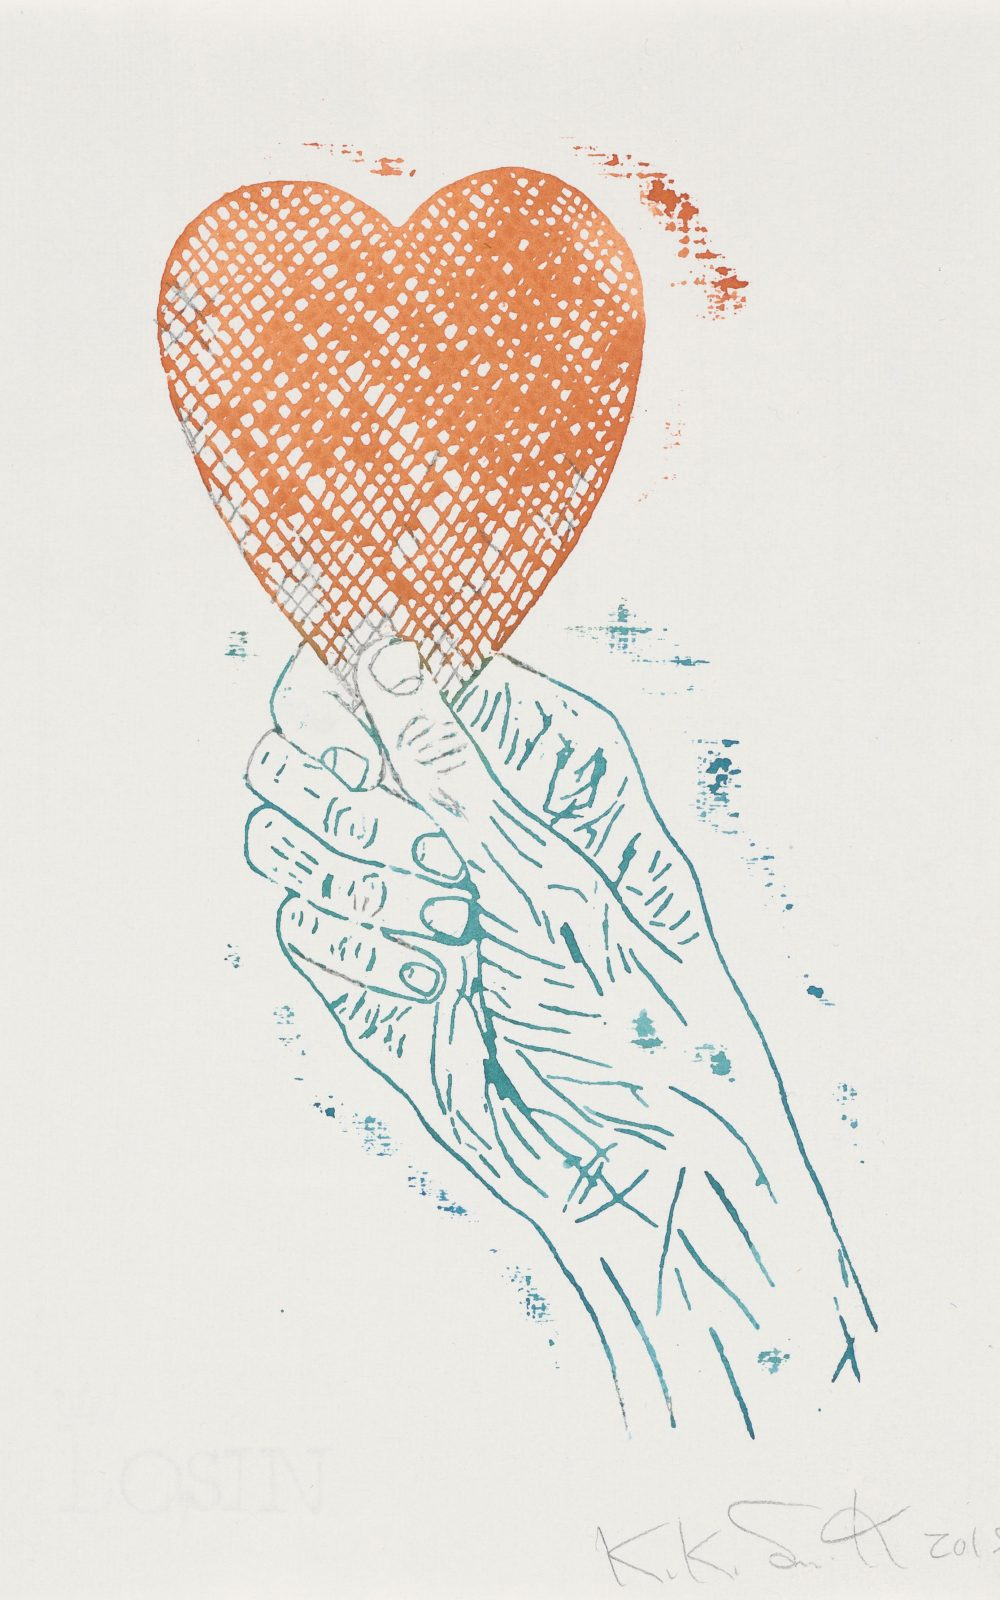 Kiki Smith, Heart in Hand, 2015  Monoprint; Aquarell und Bleistift auf Losin Prague-Papier, 296 x 205 mm Staatliche Graphische Sammlung München, Schenkung der Künstlerin © Kiki Smith, courtesy Pace Gallery